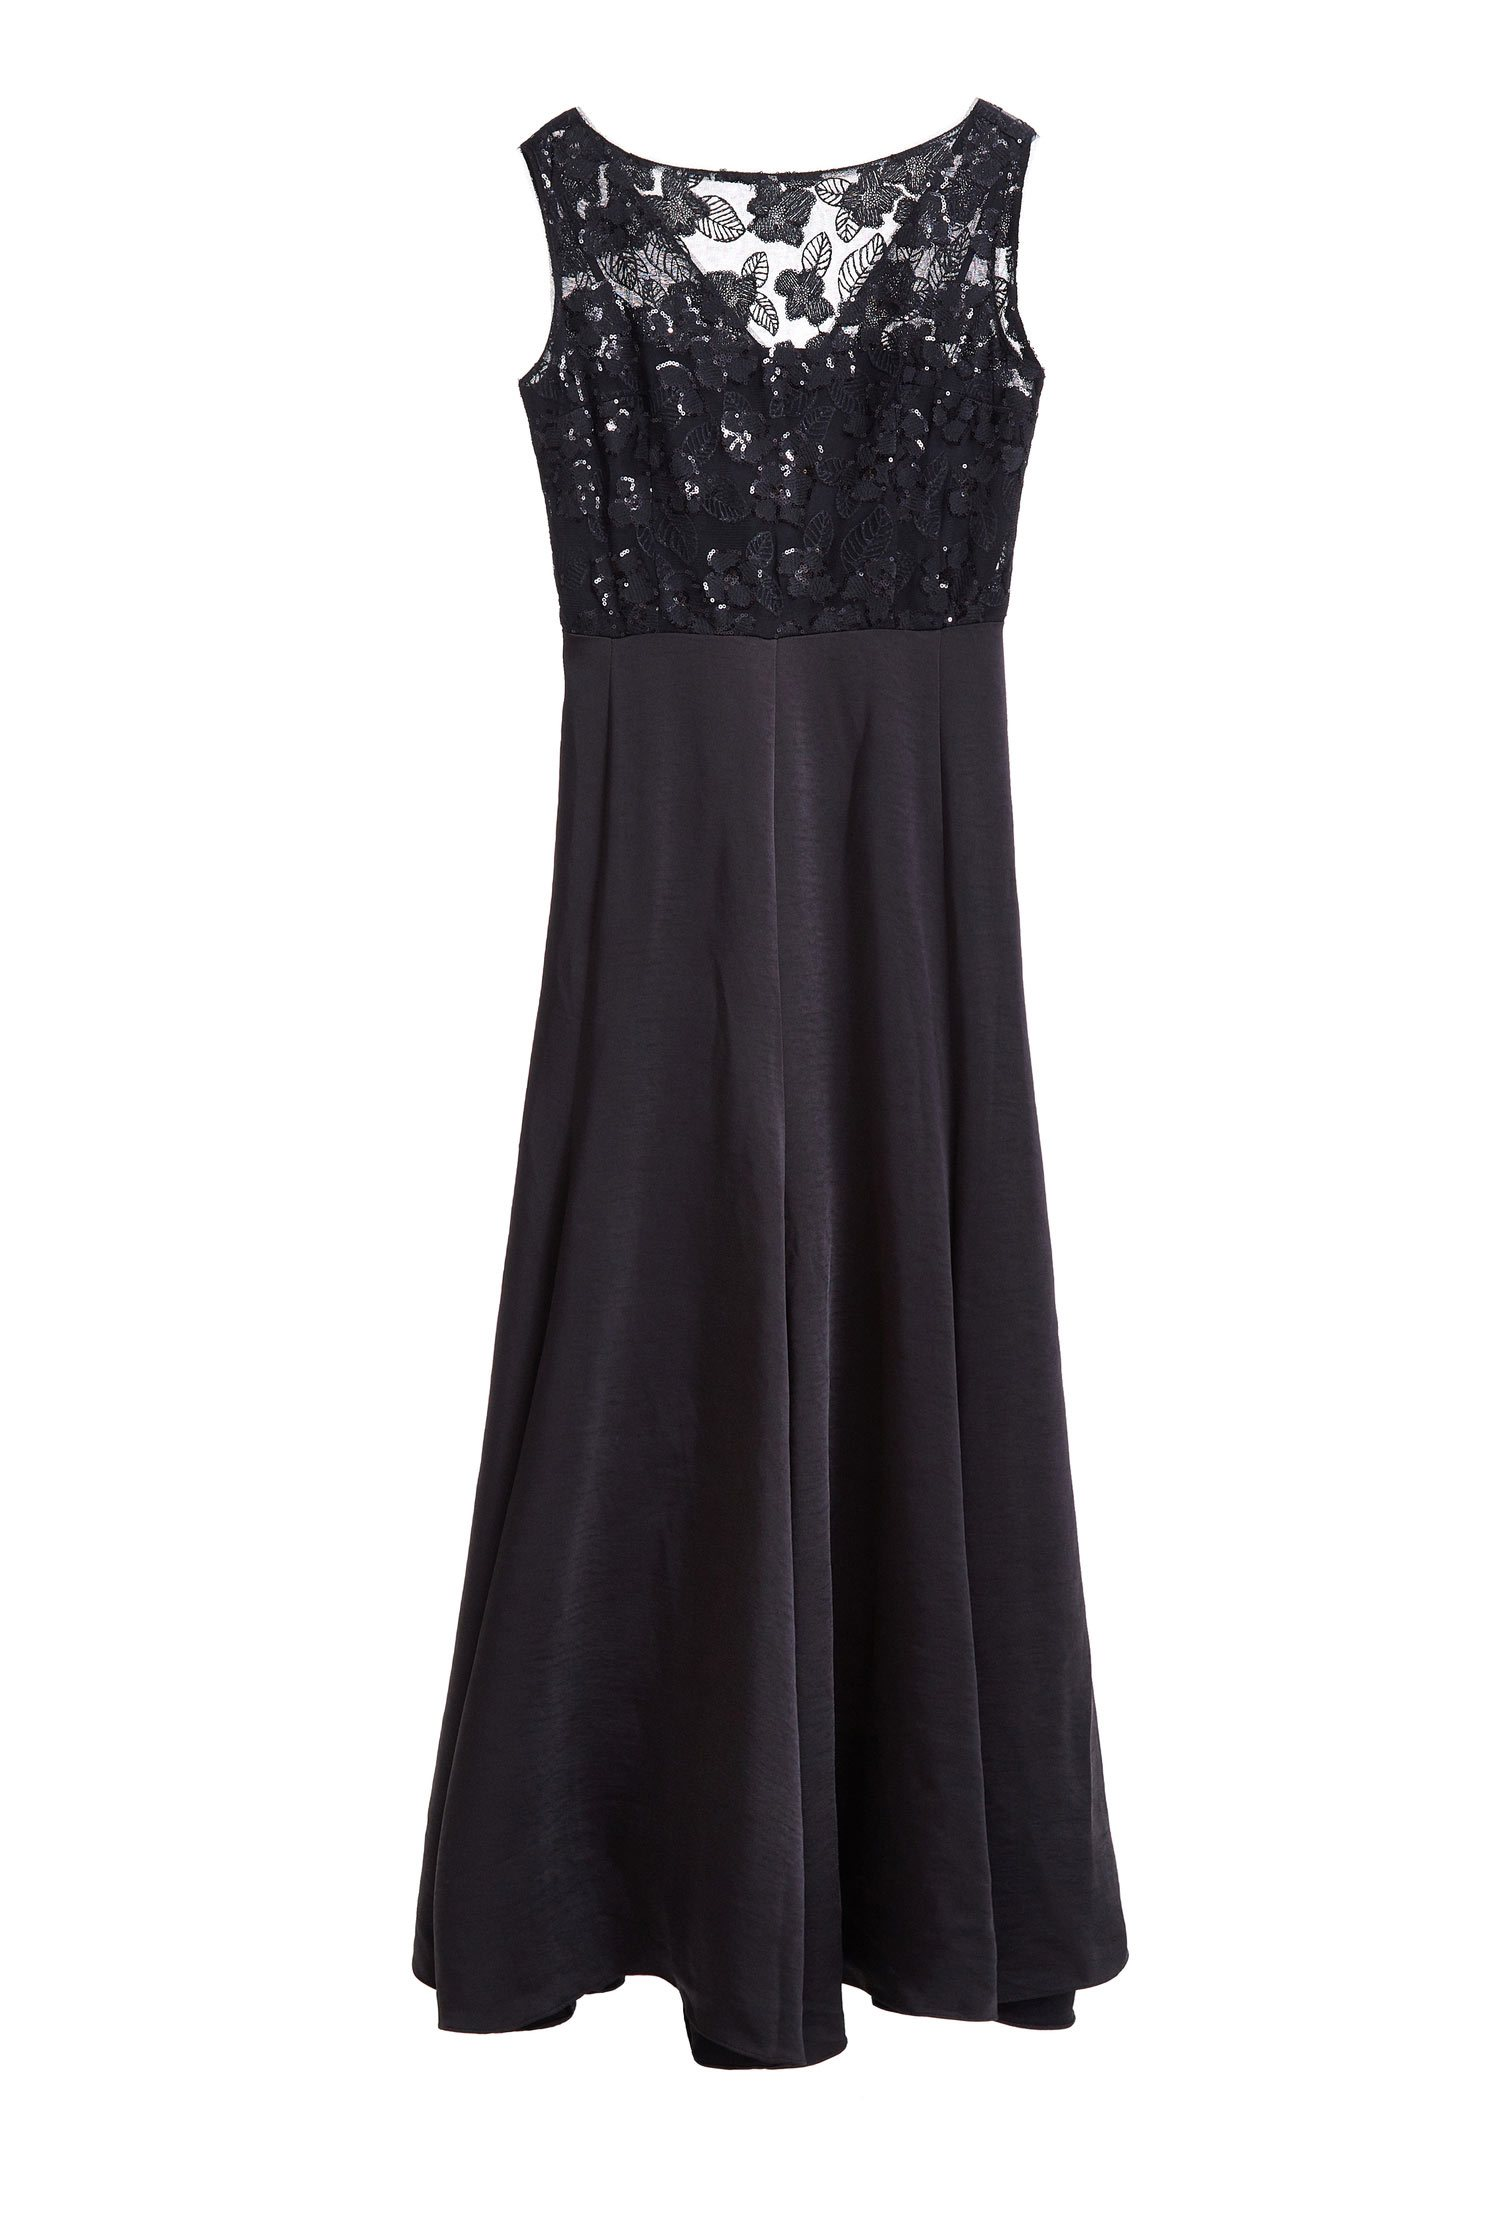 Graceful and gorgeous designed dress